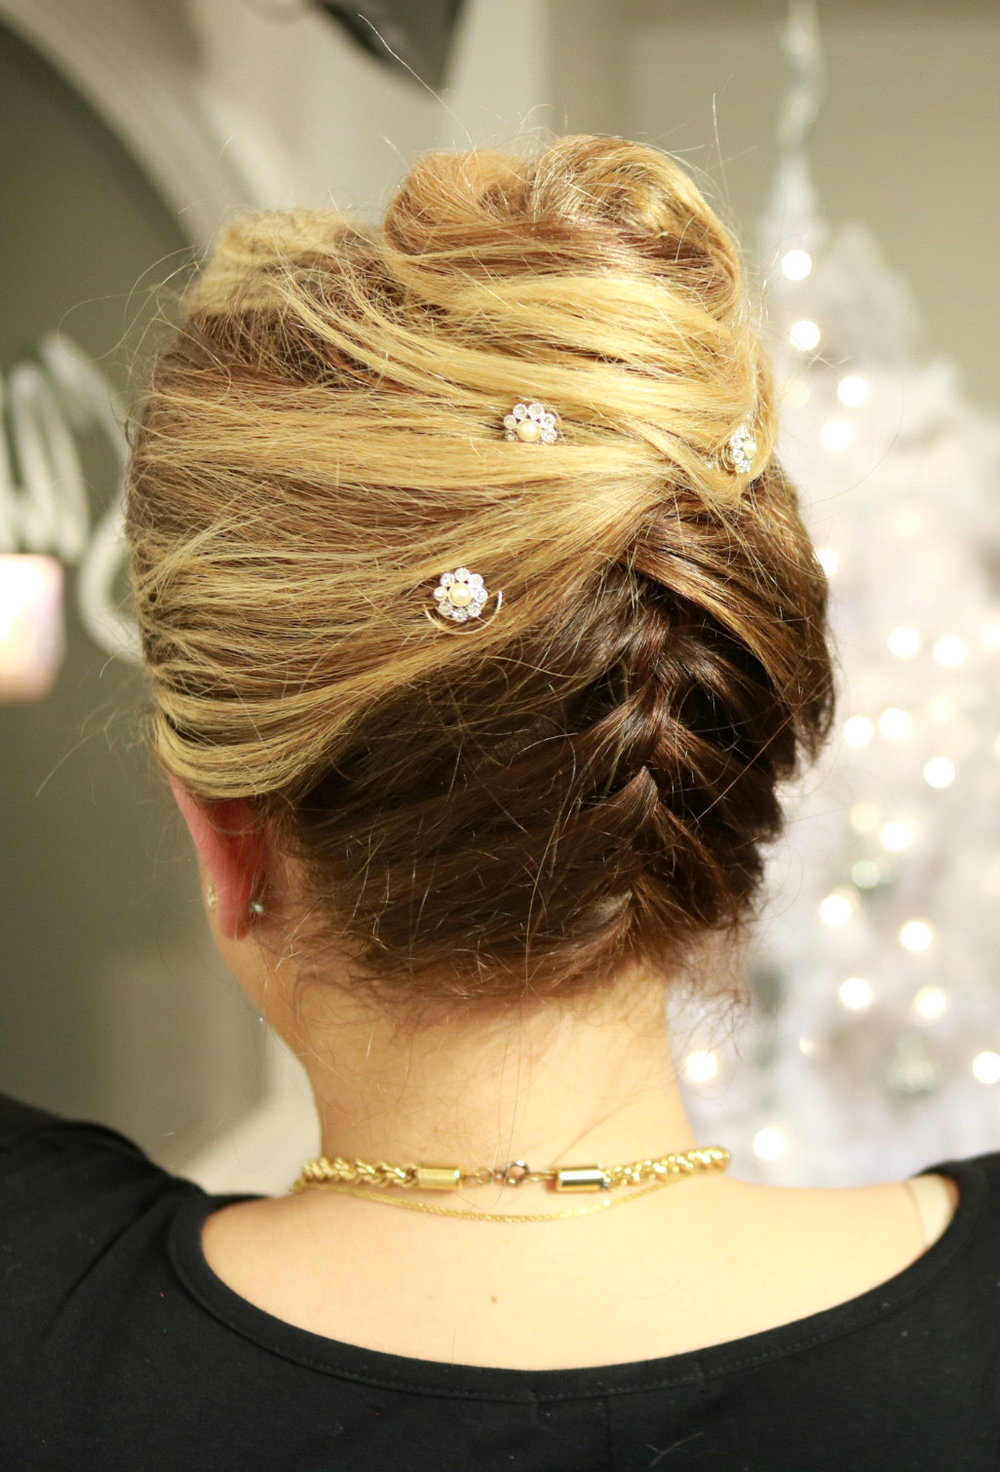 Wow! your guests with this tuxedo updo with an upside down braid | Styled by Sheri